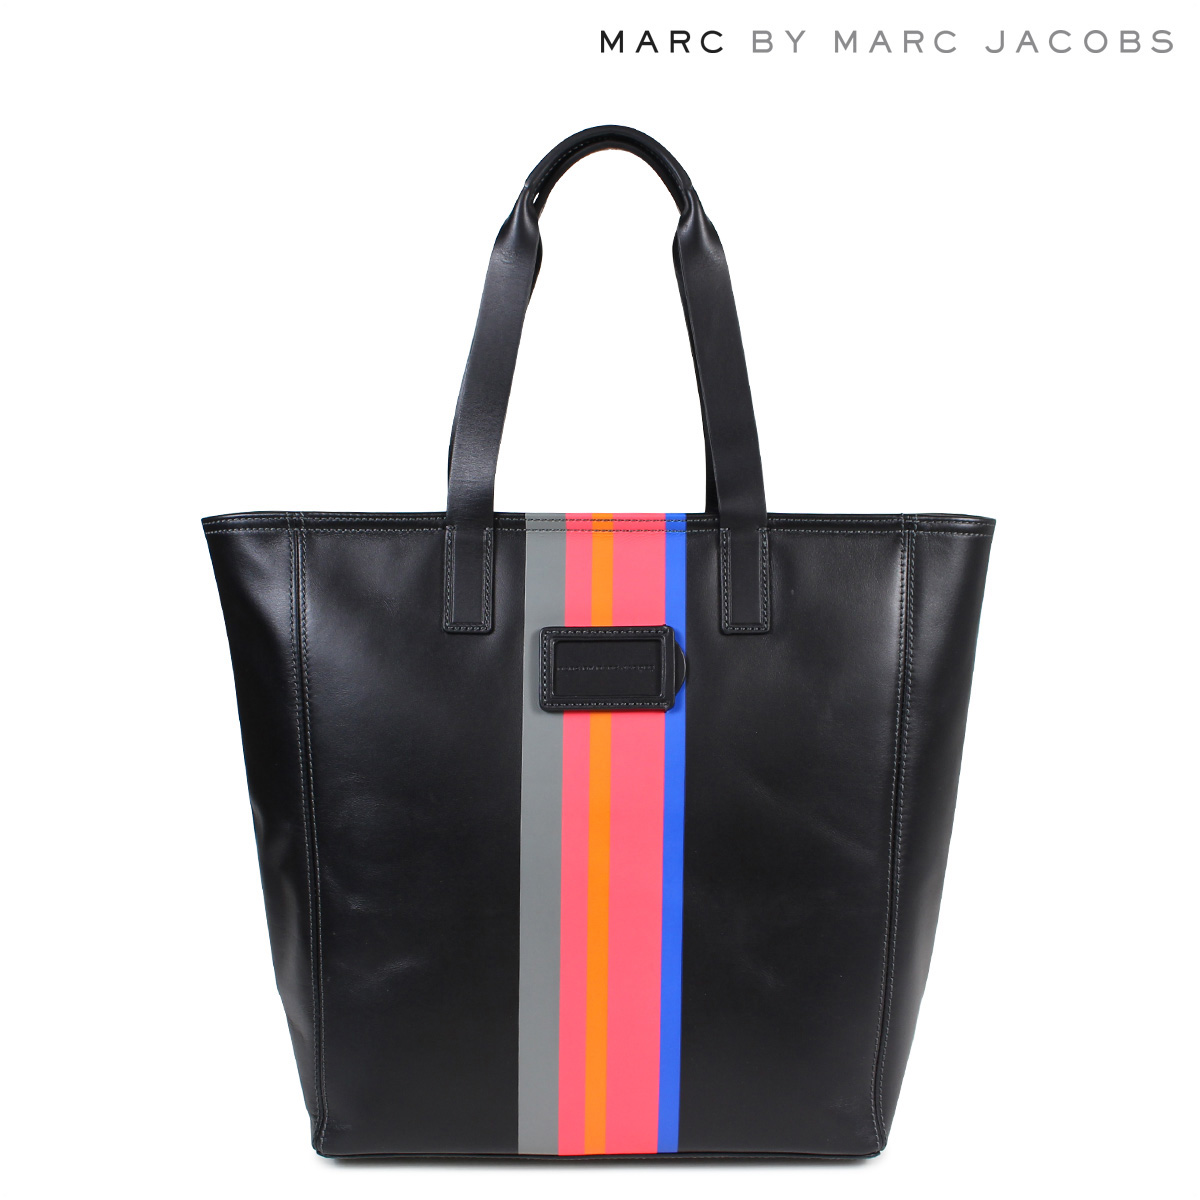 b80c6e946991 Whats up Sports  MARC BY MARC JACOBS LEATHER TOTE mark by mark Jacobs tote  bag bag lady M0005704 black